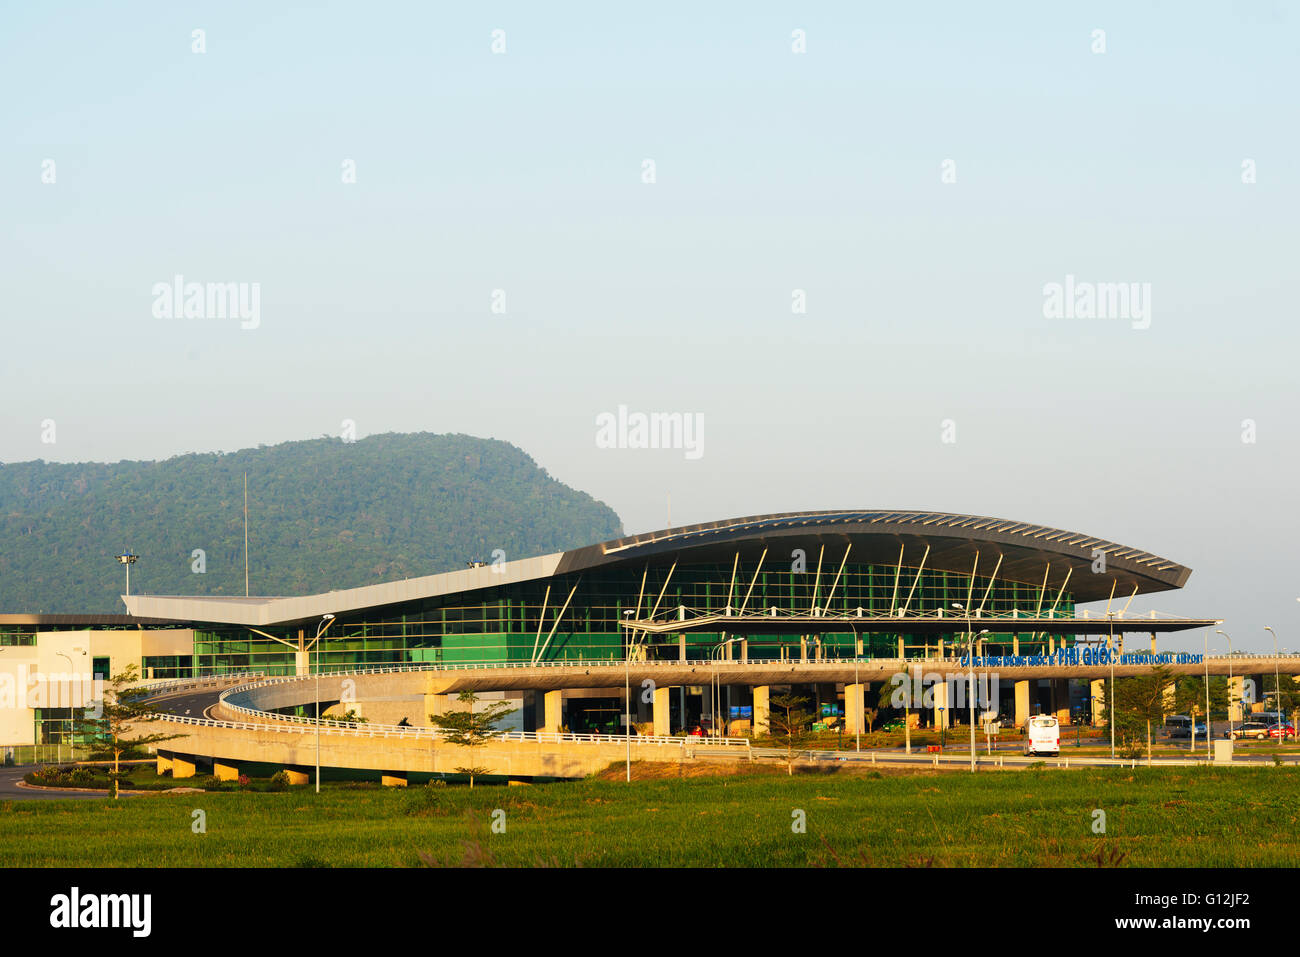 South East Asia, Vietnam, Phu Quoc island, airport - Stock Image